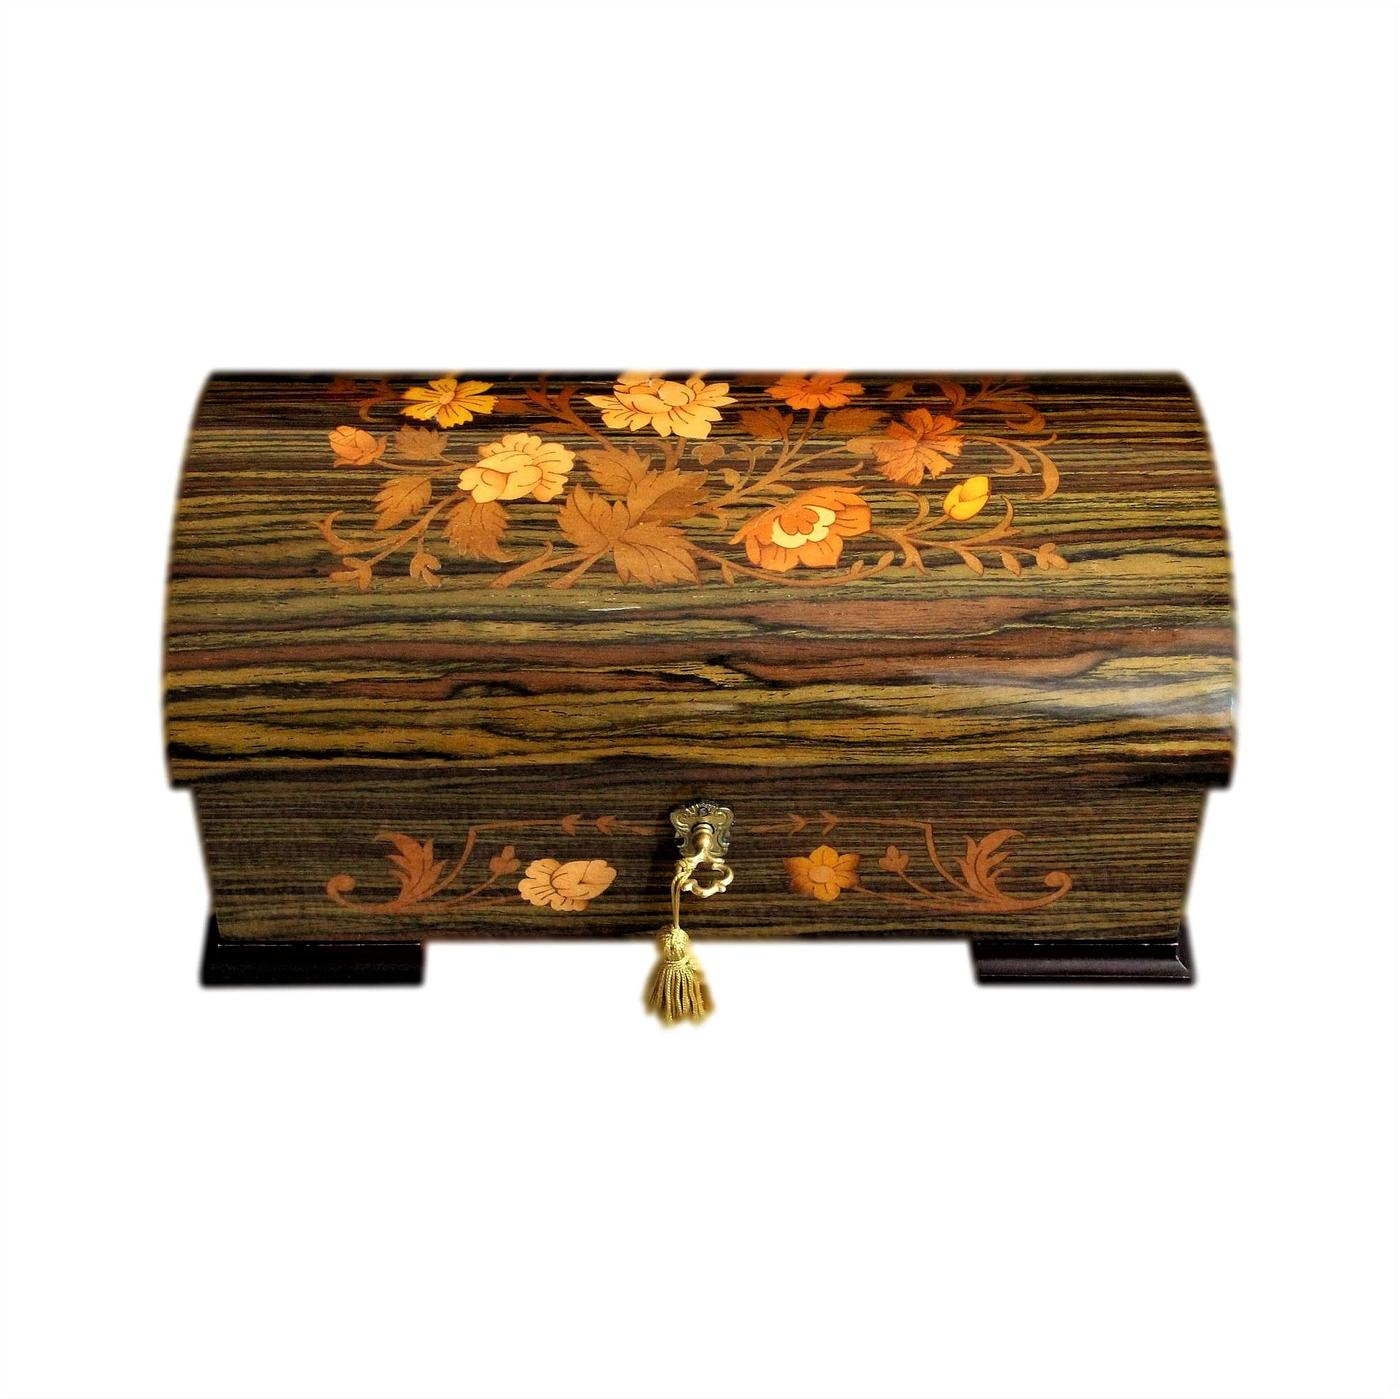 Stunning Sorrento Inlaid Vintage Musical Jewellery Box